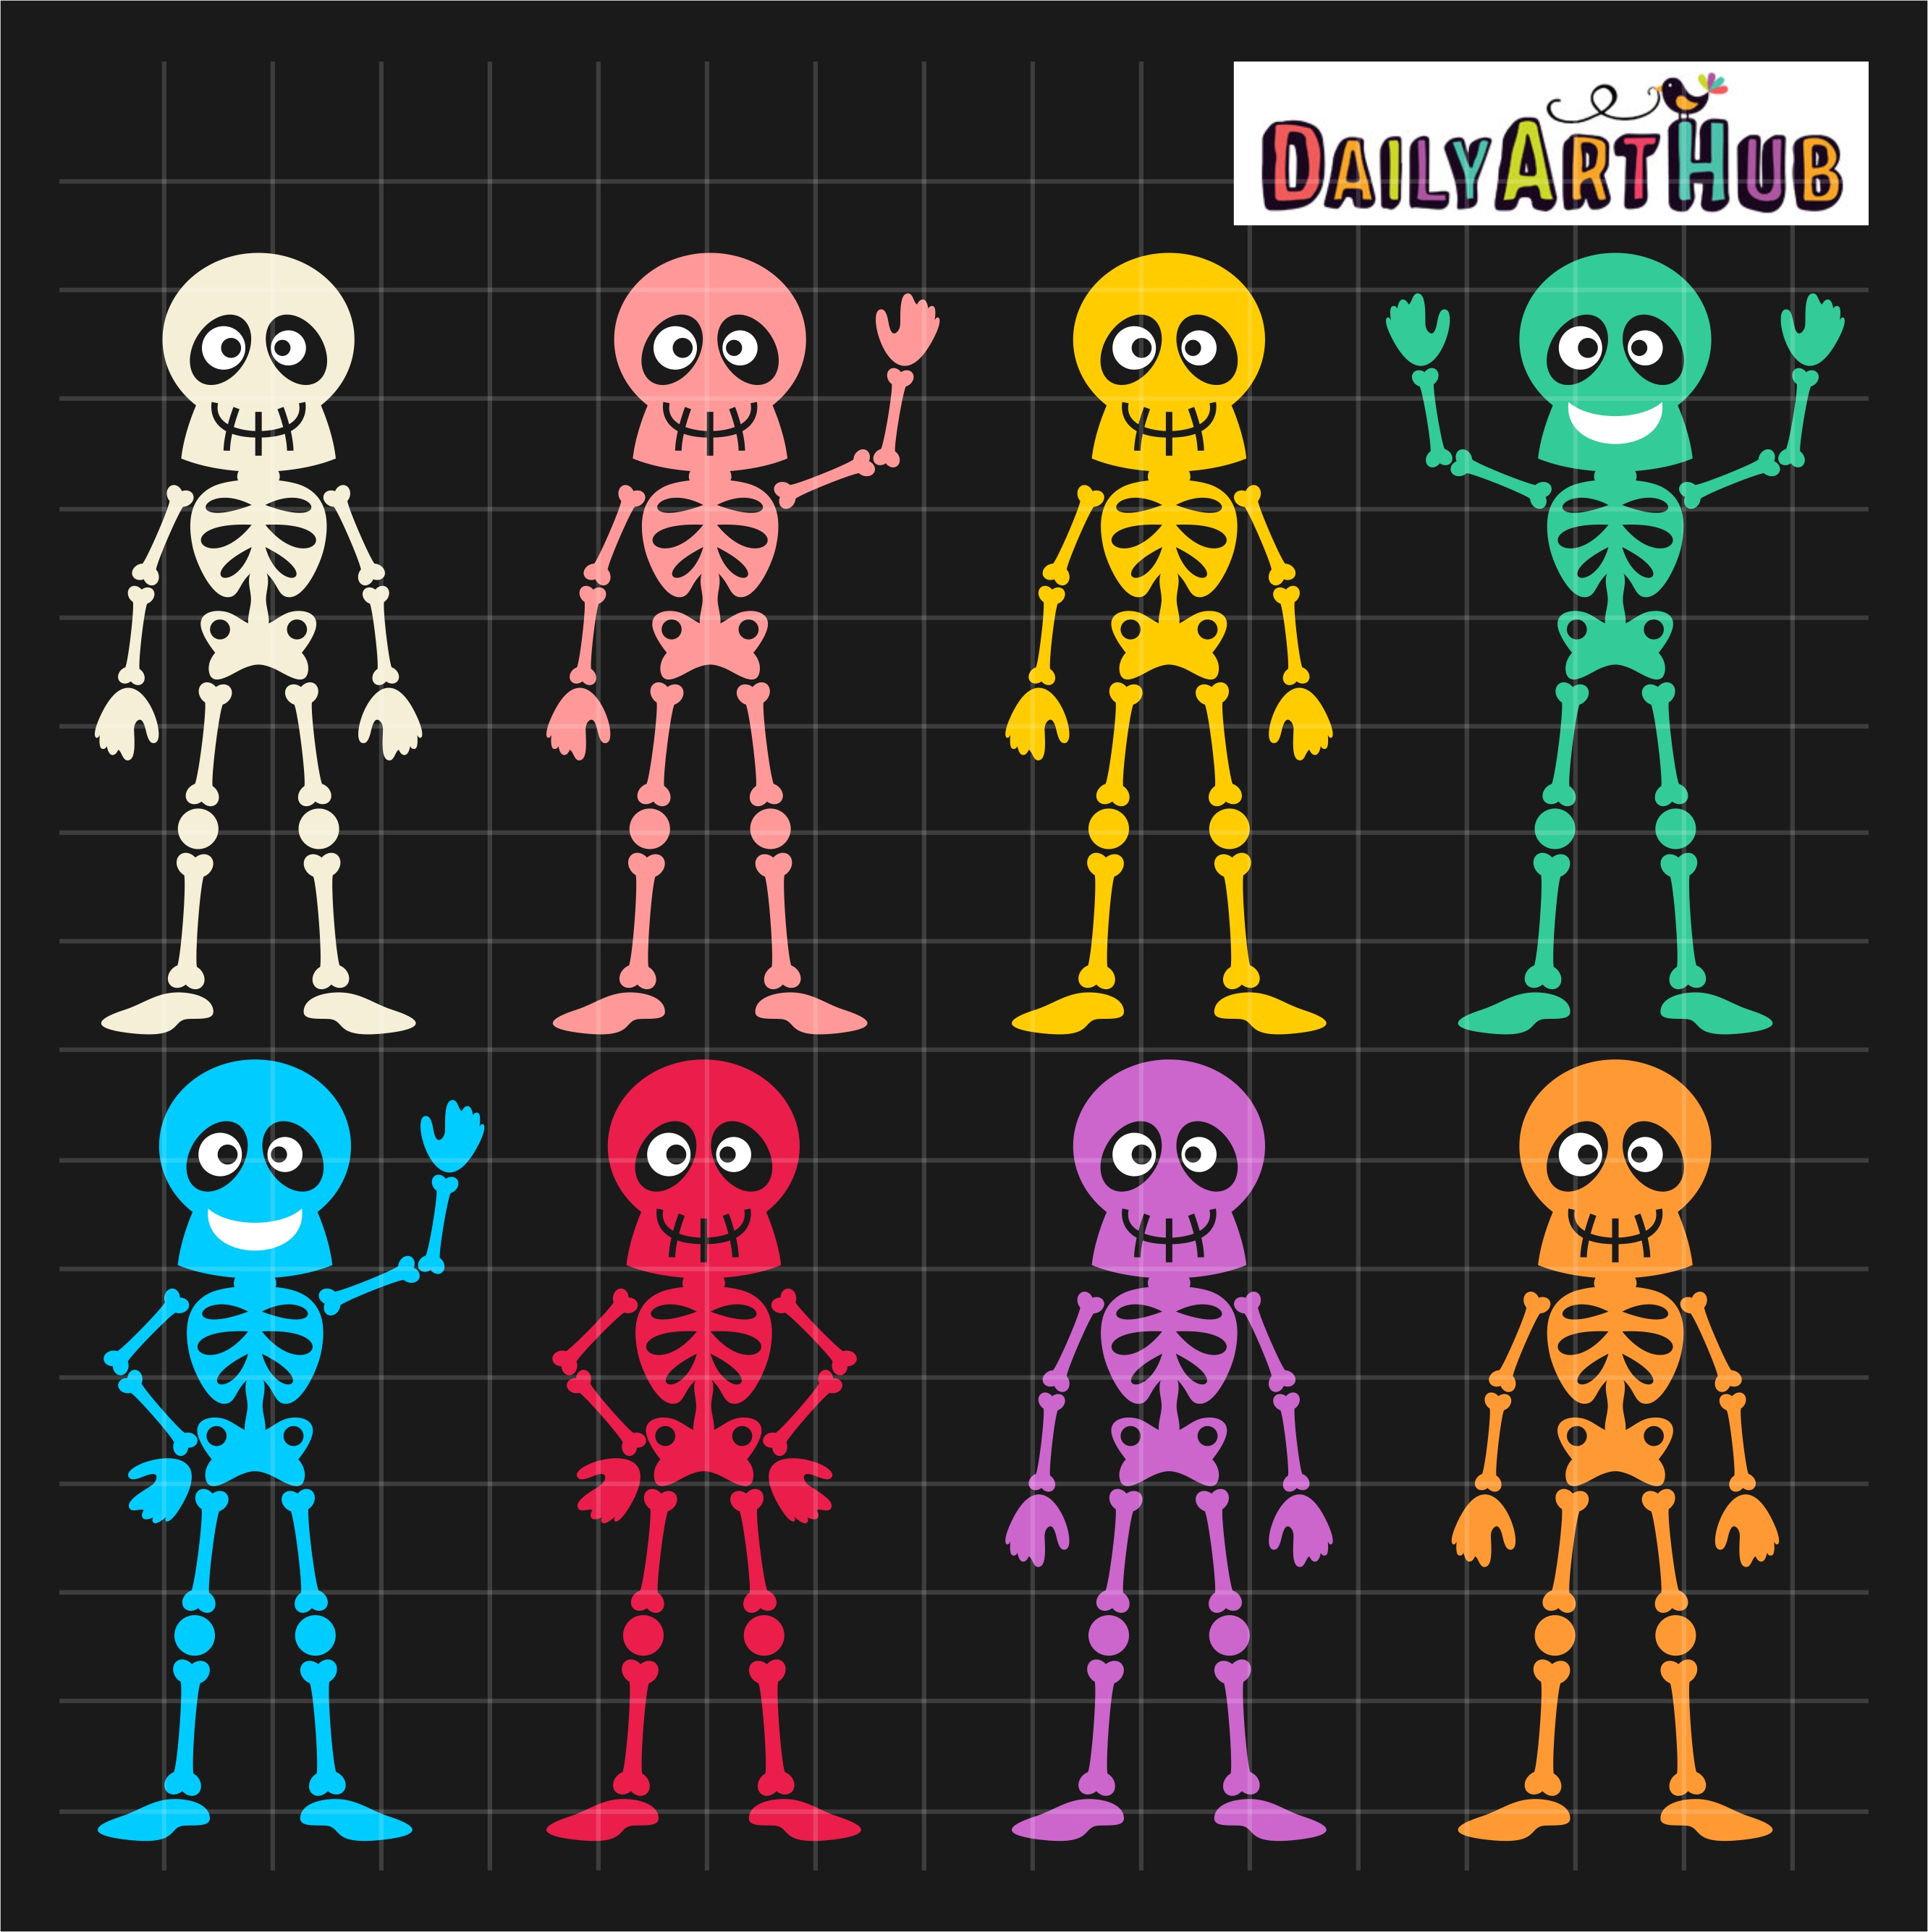 Halloween Funny Skeletons Clip Art Set – Daily Art Hub ...